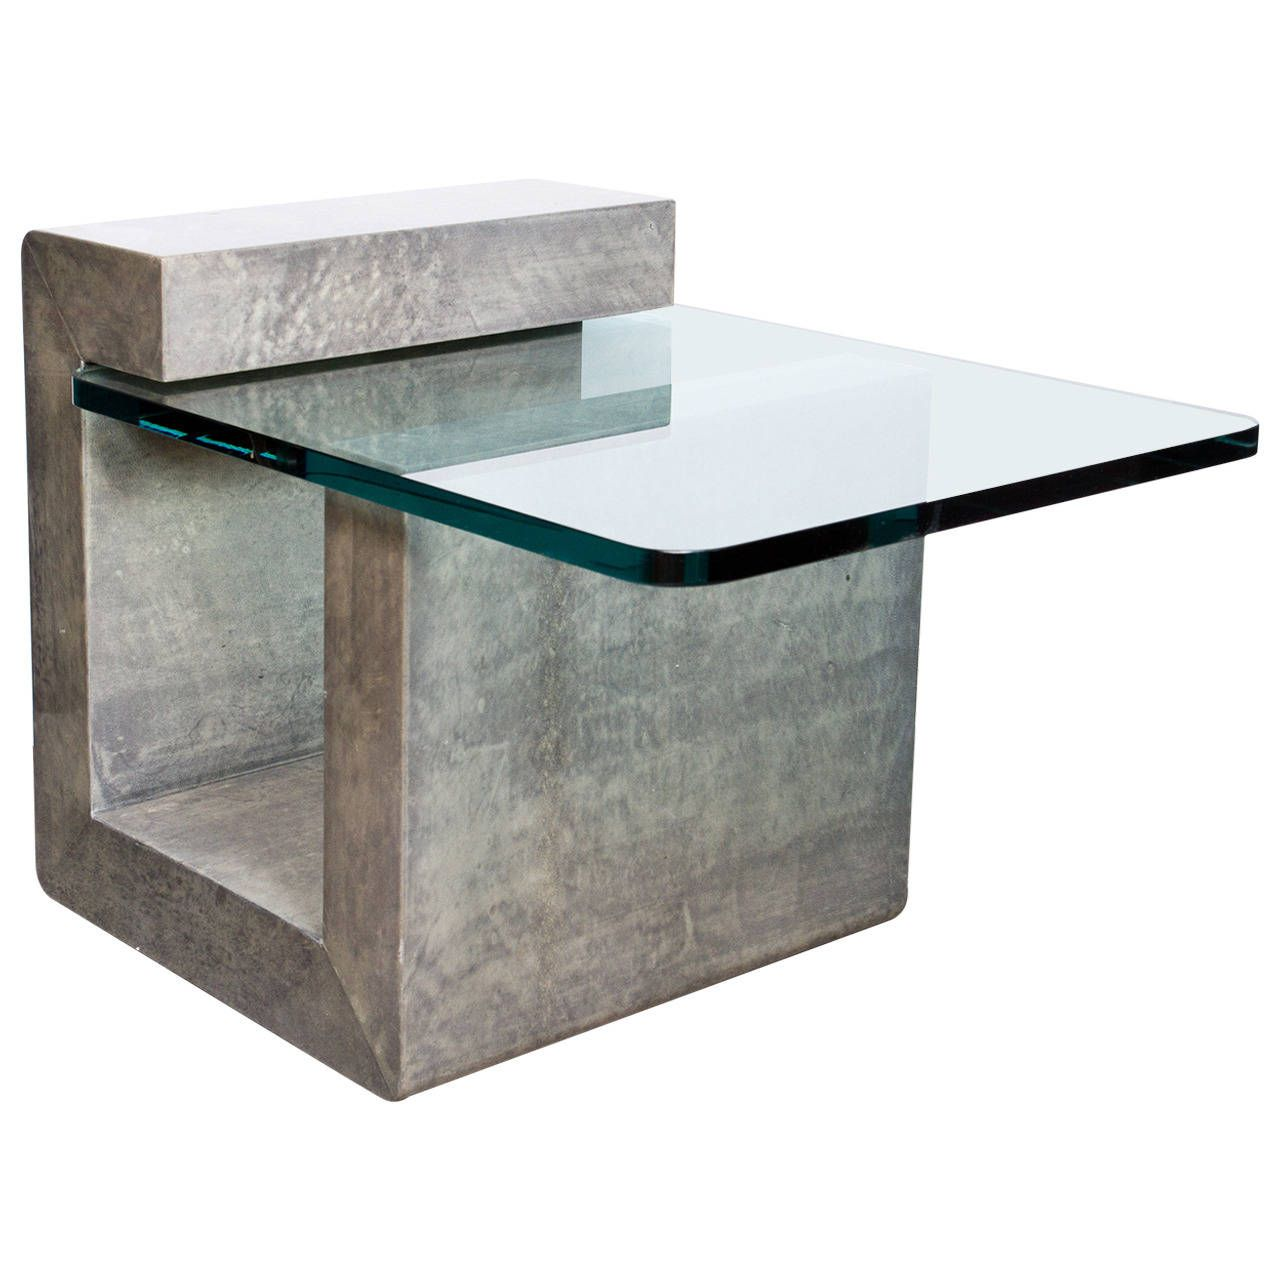 Modernist lacquered parchment side table tables unique for Unusual tables